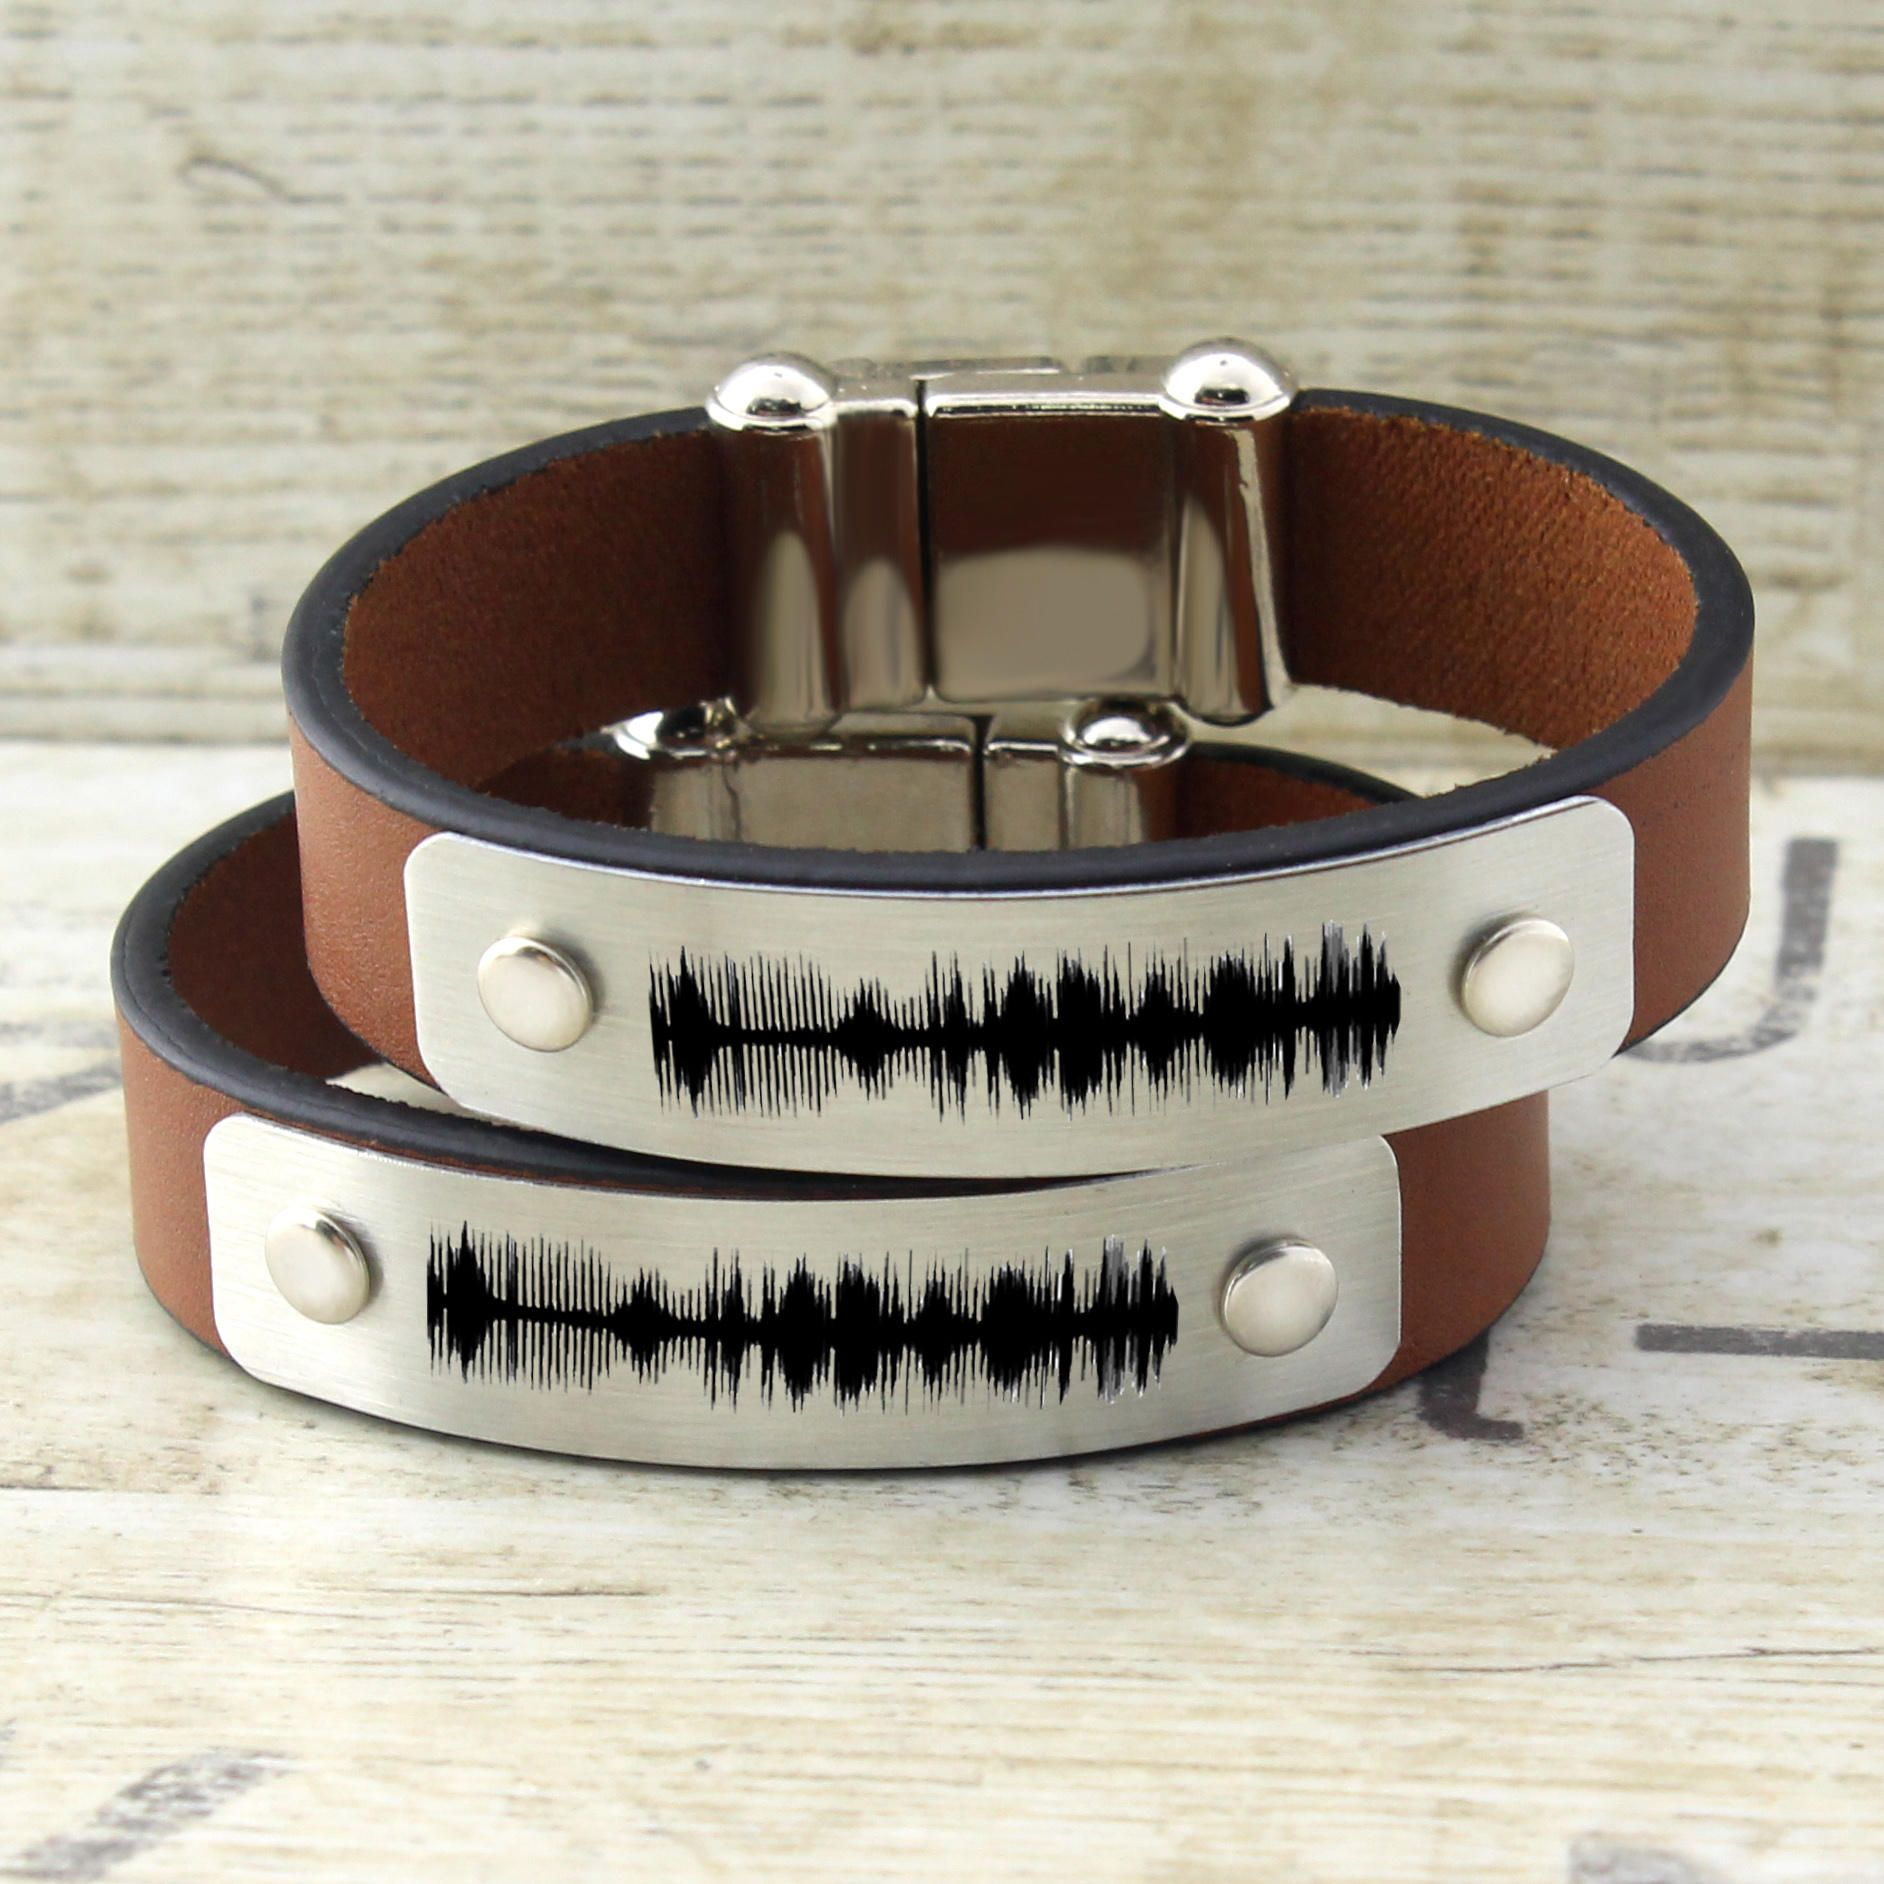 S Bracelets Personalized Sound Wave Bracelet Jewelry Men Women His And Her Matching Gift Idea